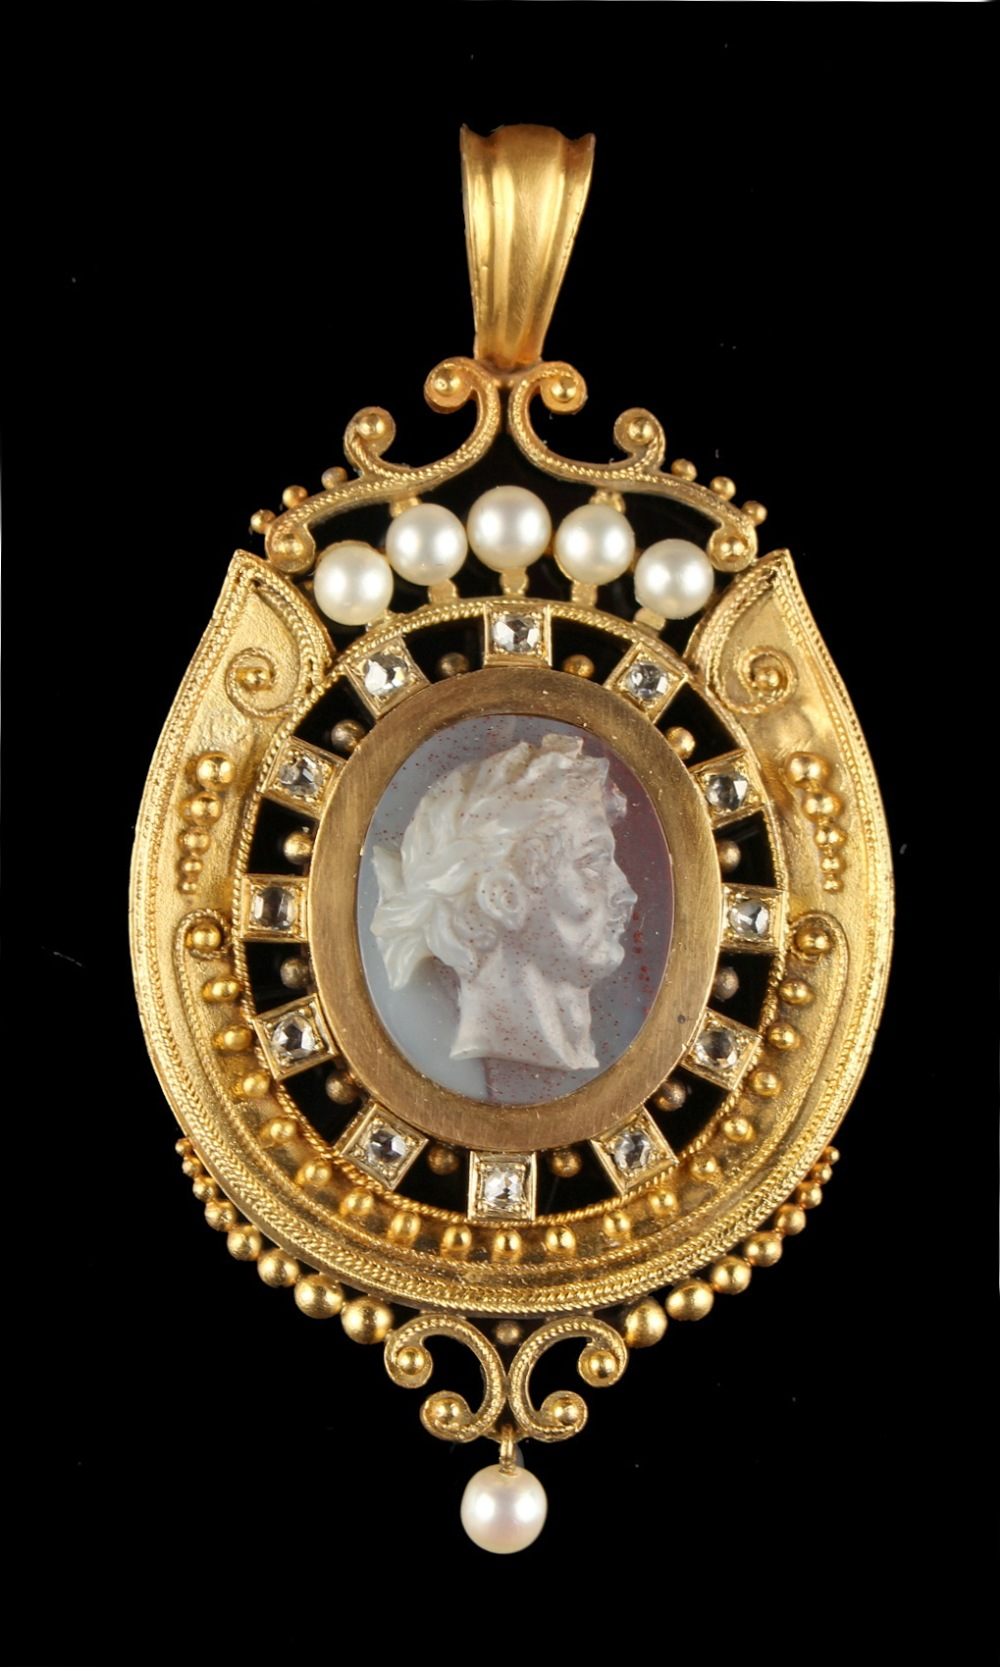 Lot 244 - A good Victorian yellow gold carved hardstone cameo pendant, the oval cameo carved in high relief